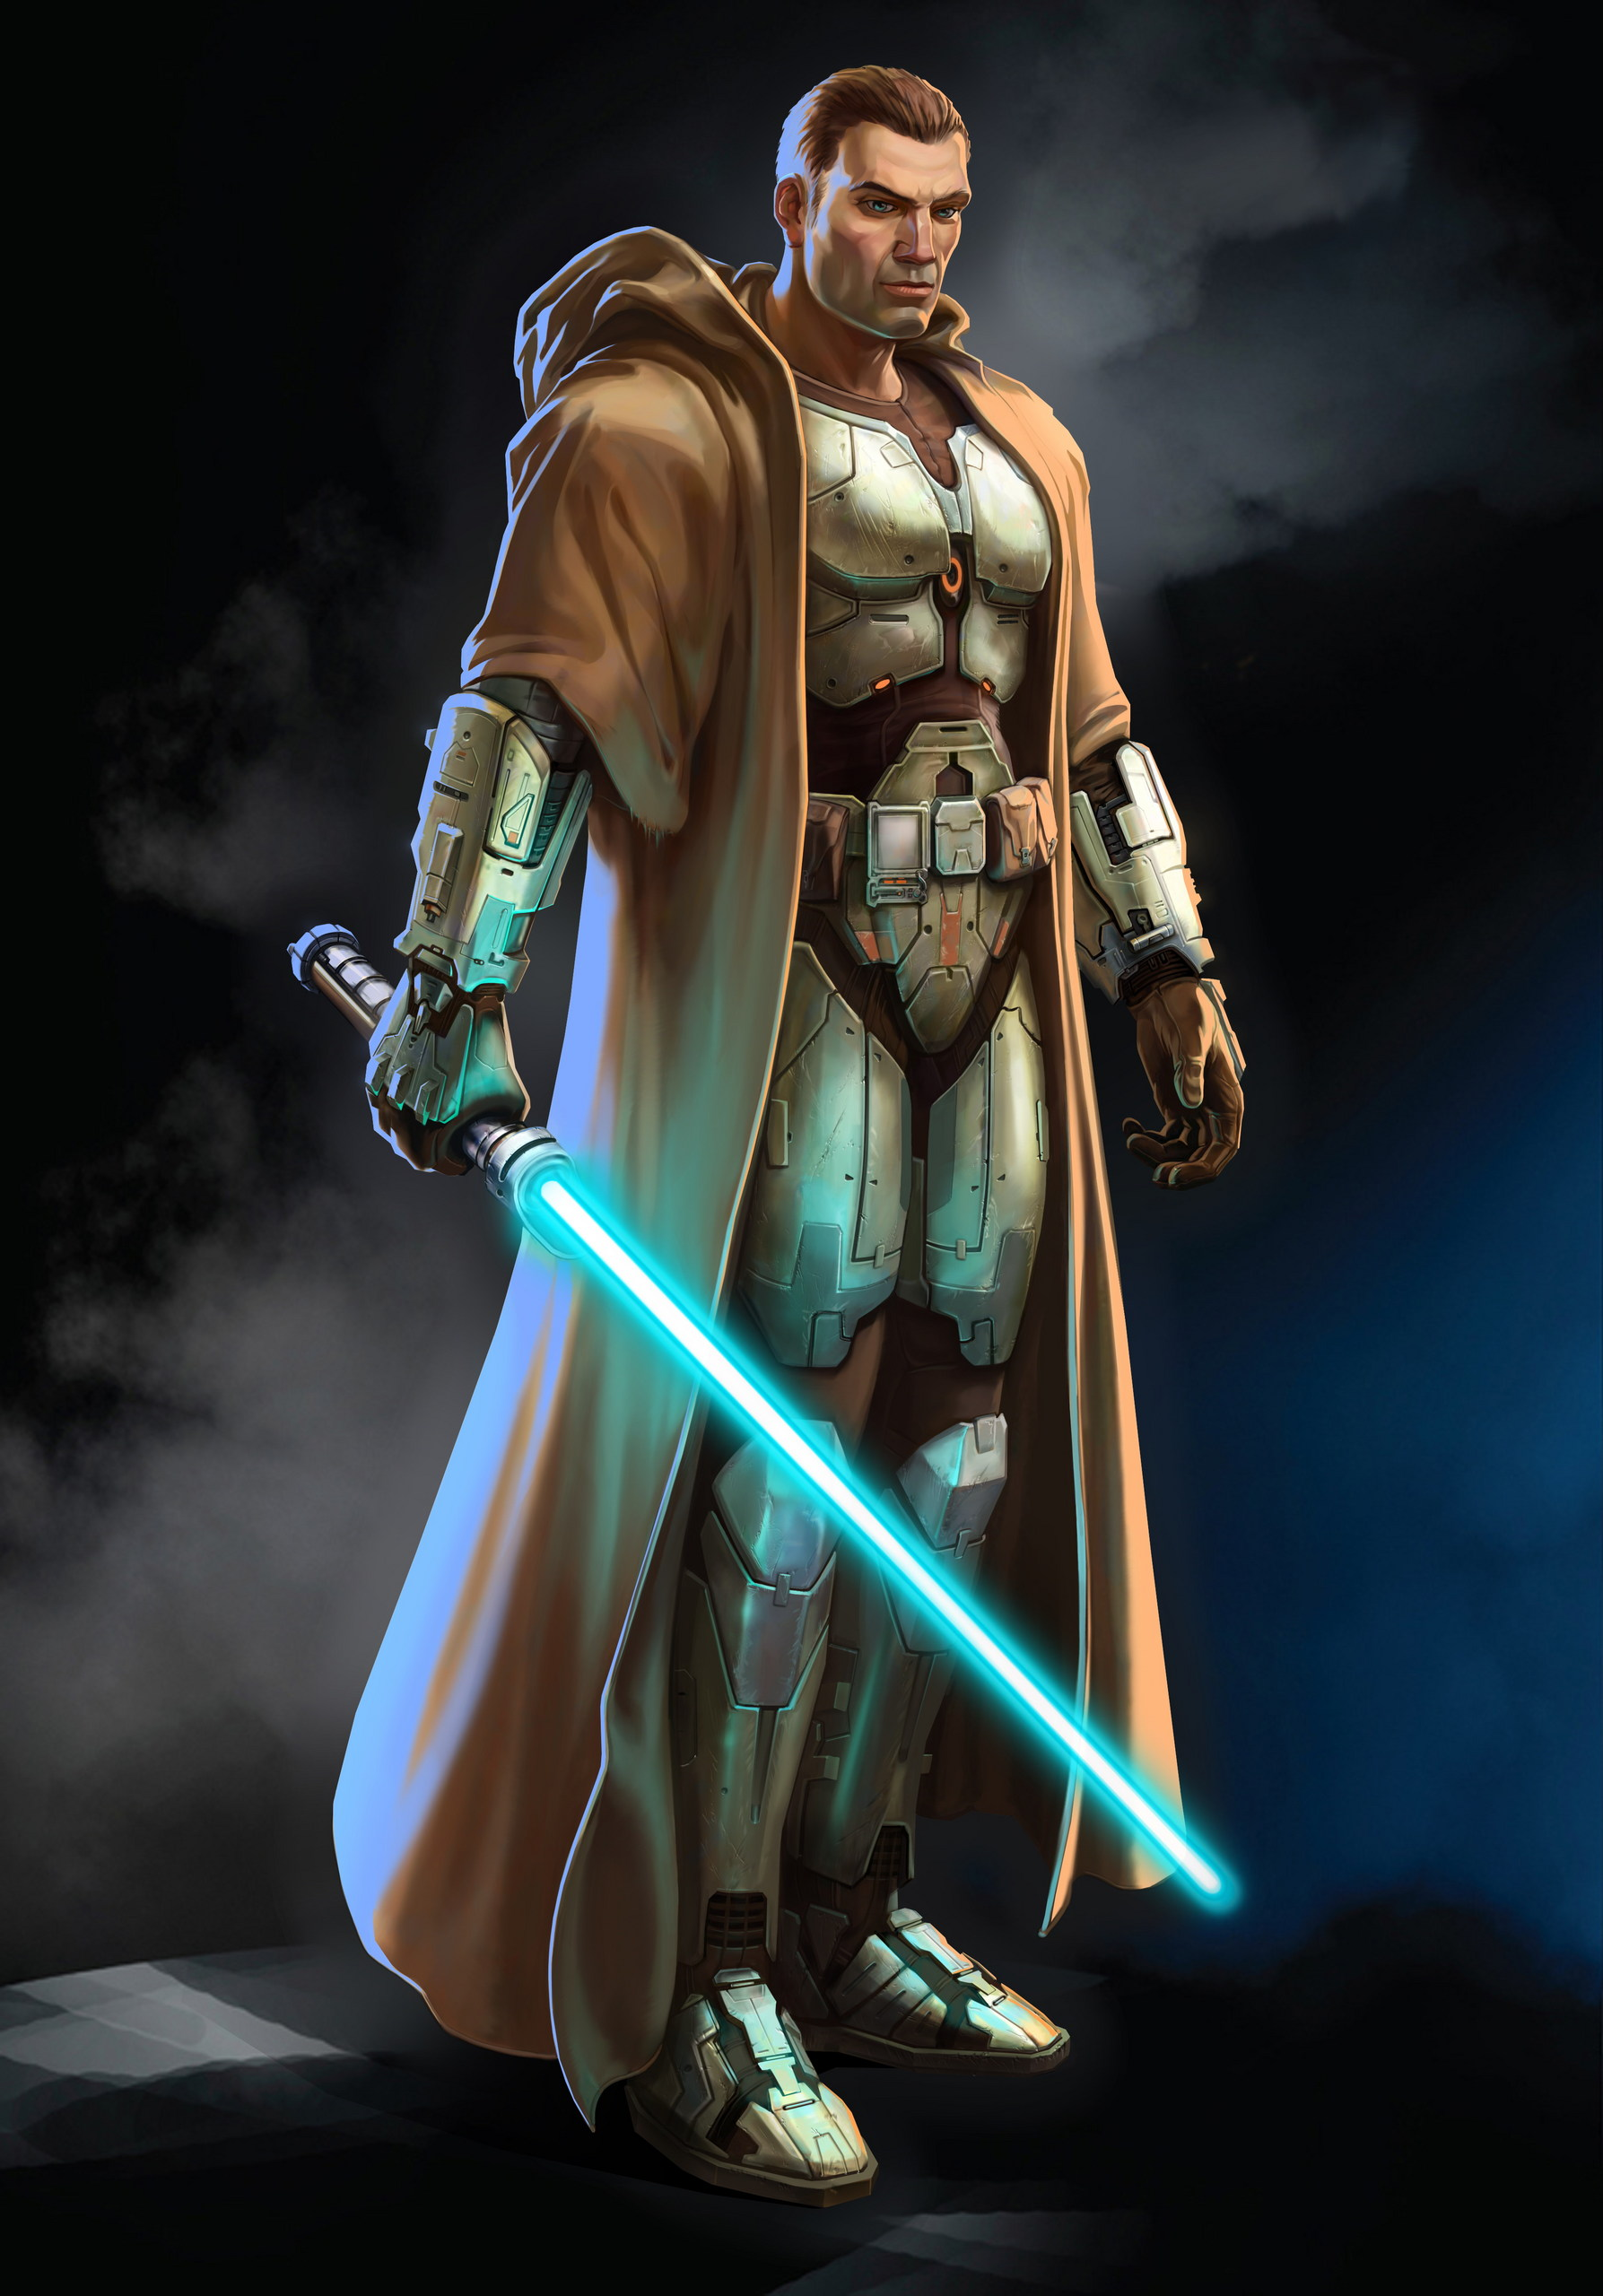 Star Wars Jedi Images Jedi Hd Wallpaper And Background Photos